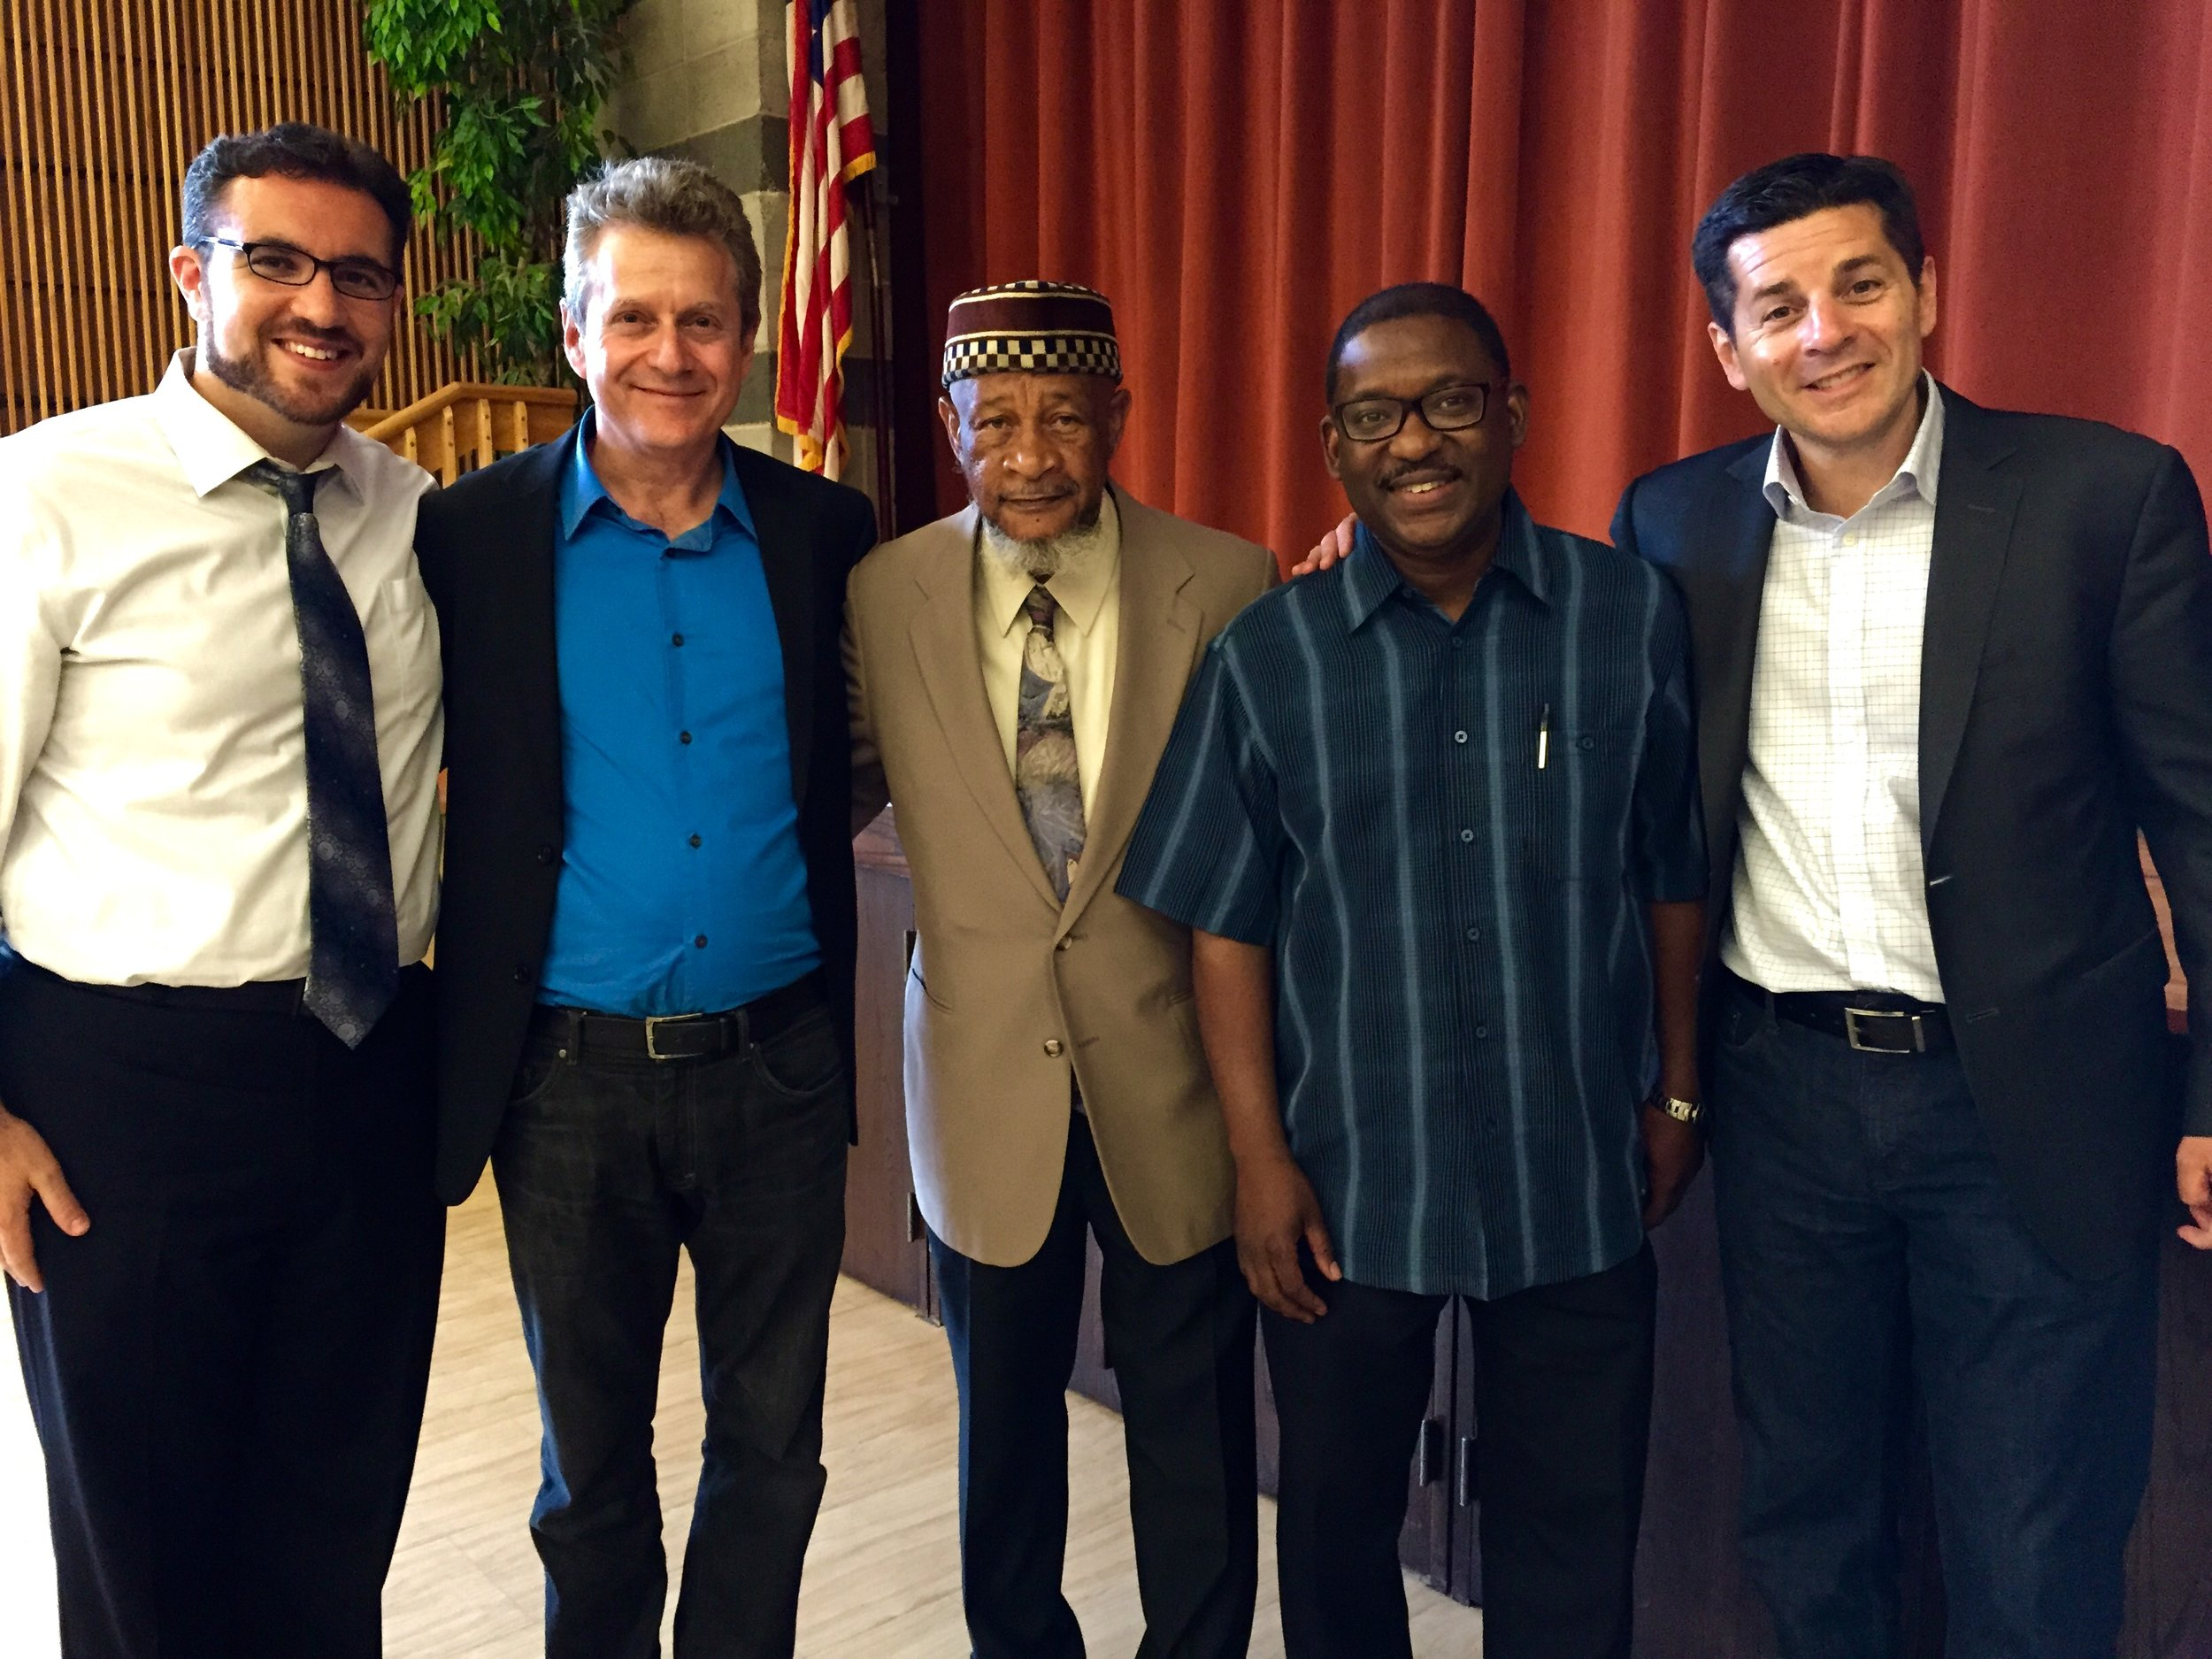 Scott and Dean with the Rabbi of Ohev Shalom in Wallingford, PA and local Imams.